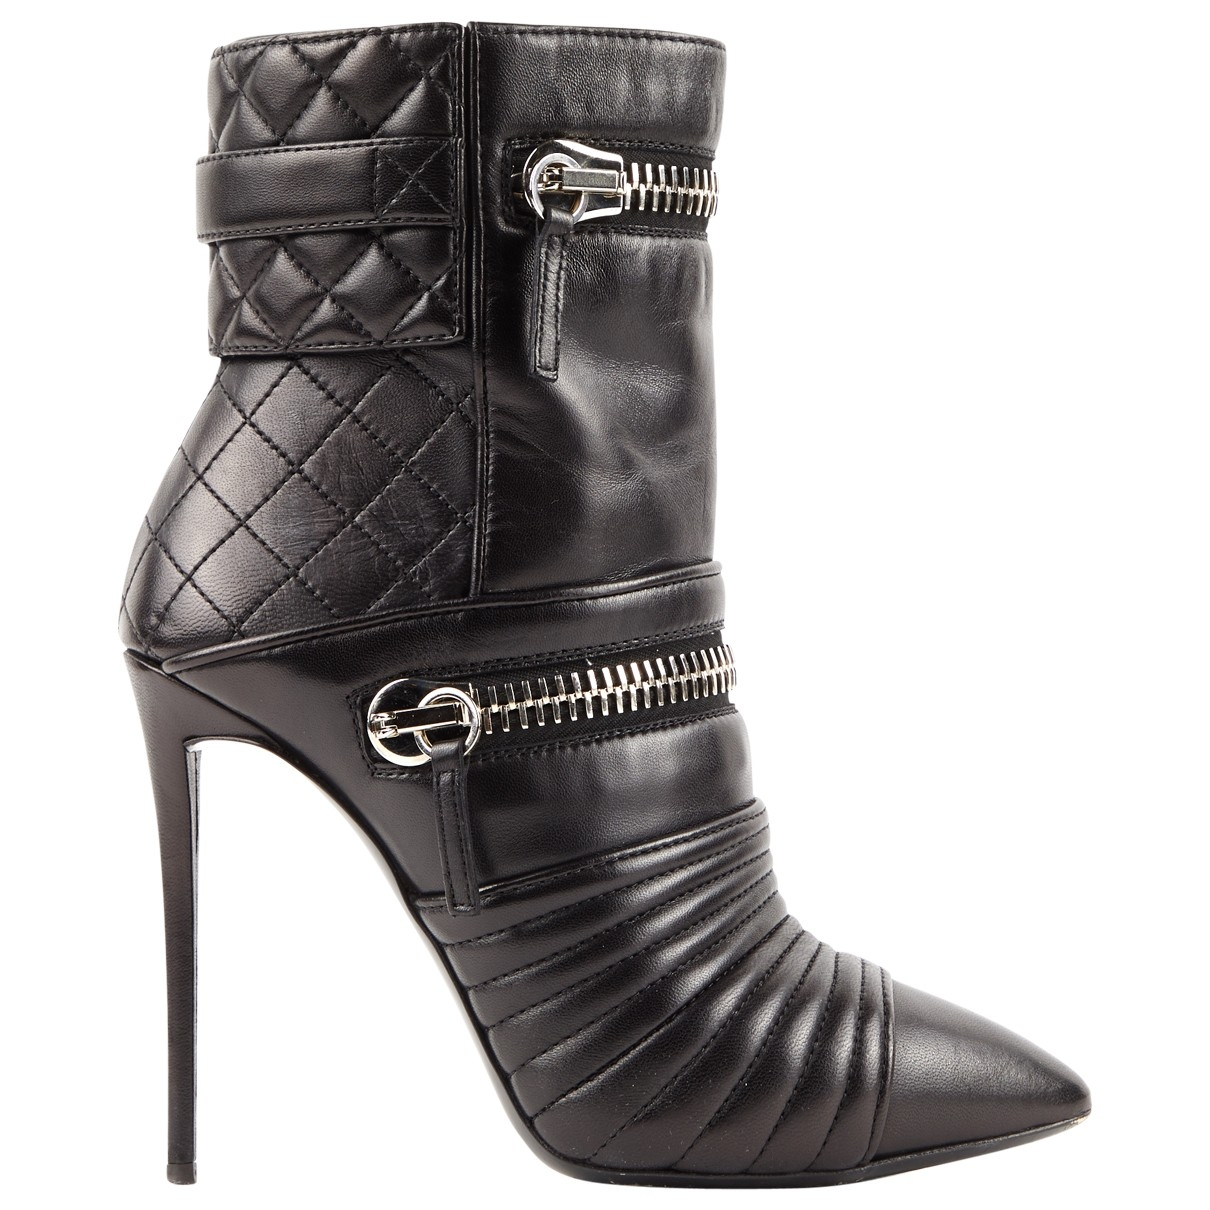 Giuseppe Zanotti \N Black Leather Ankle boots for Women 38.5 IT